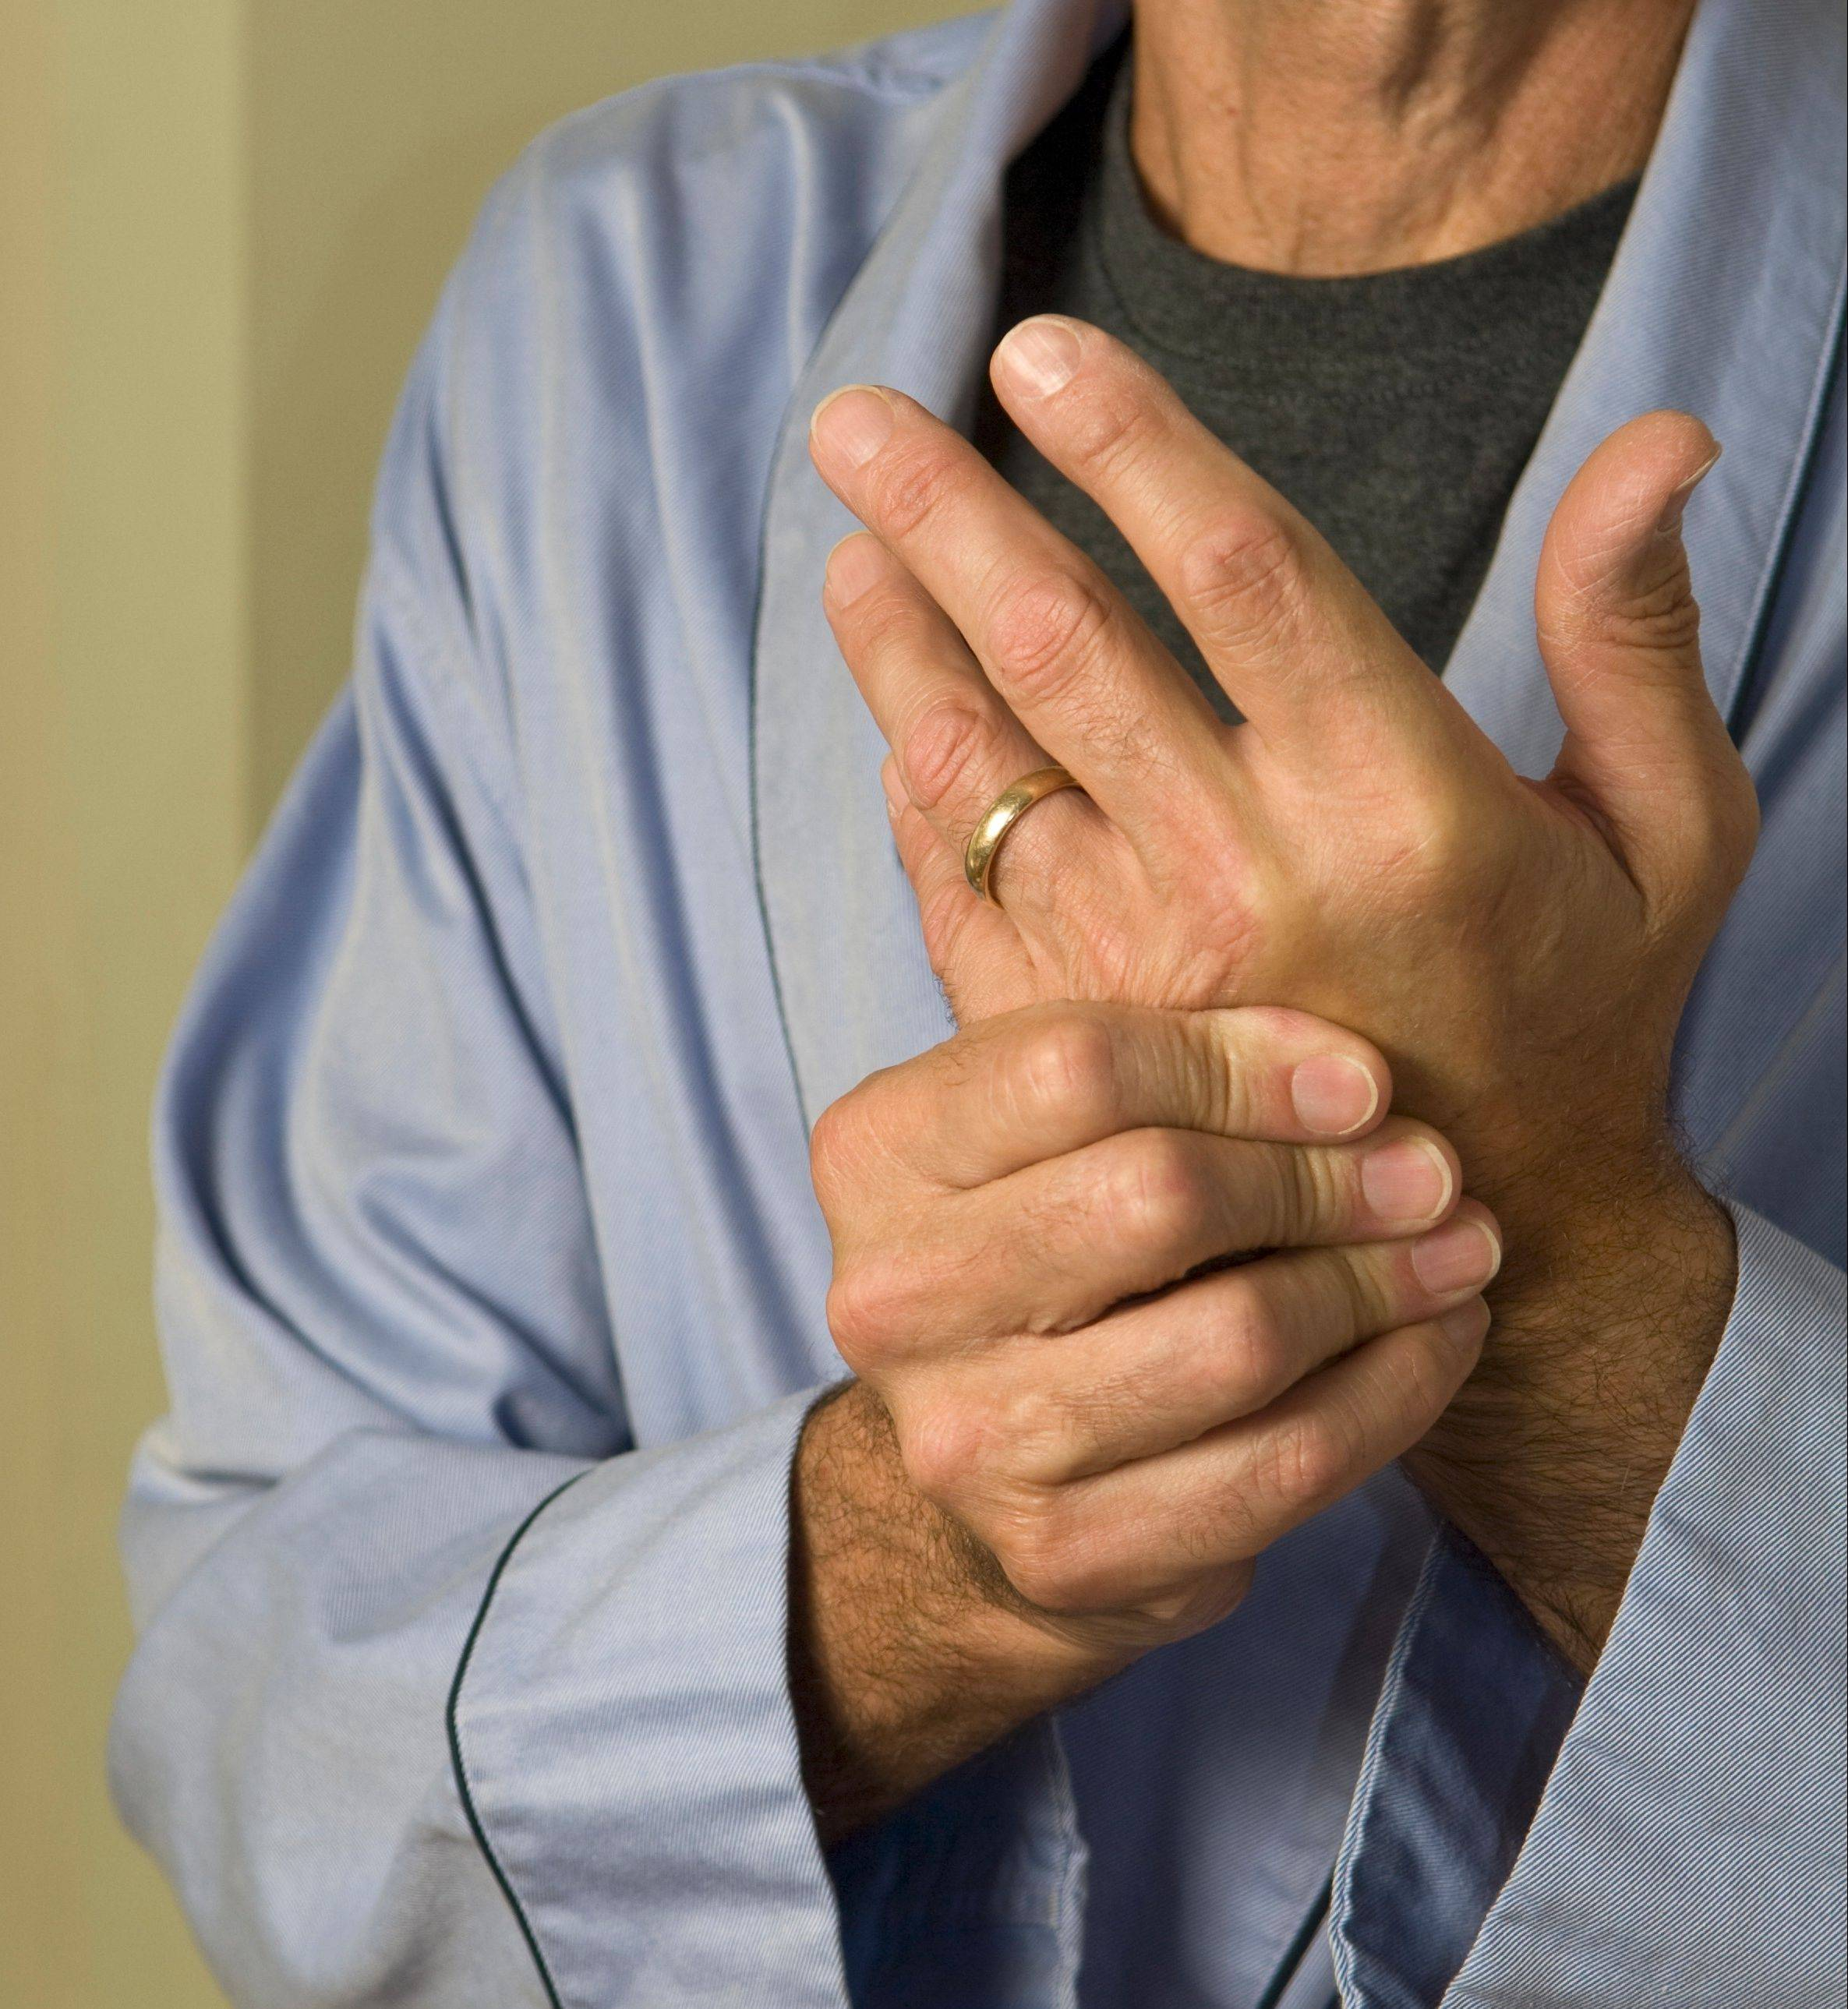 Certain over-the-counter dietary supplements may or may not help arthritis pain.